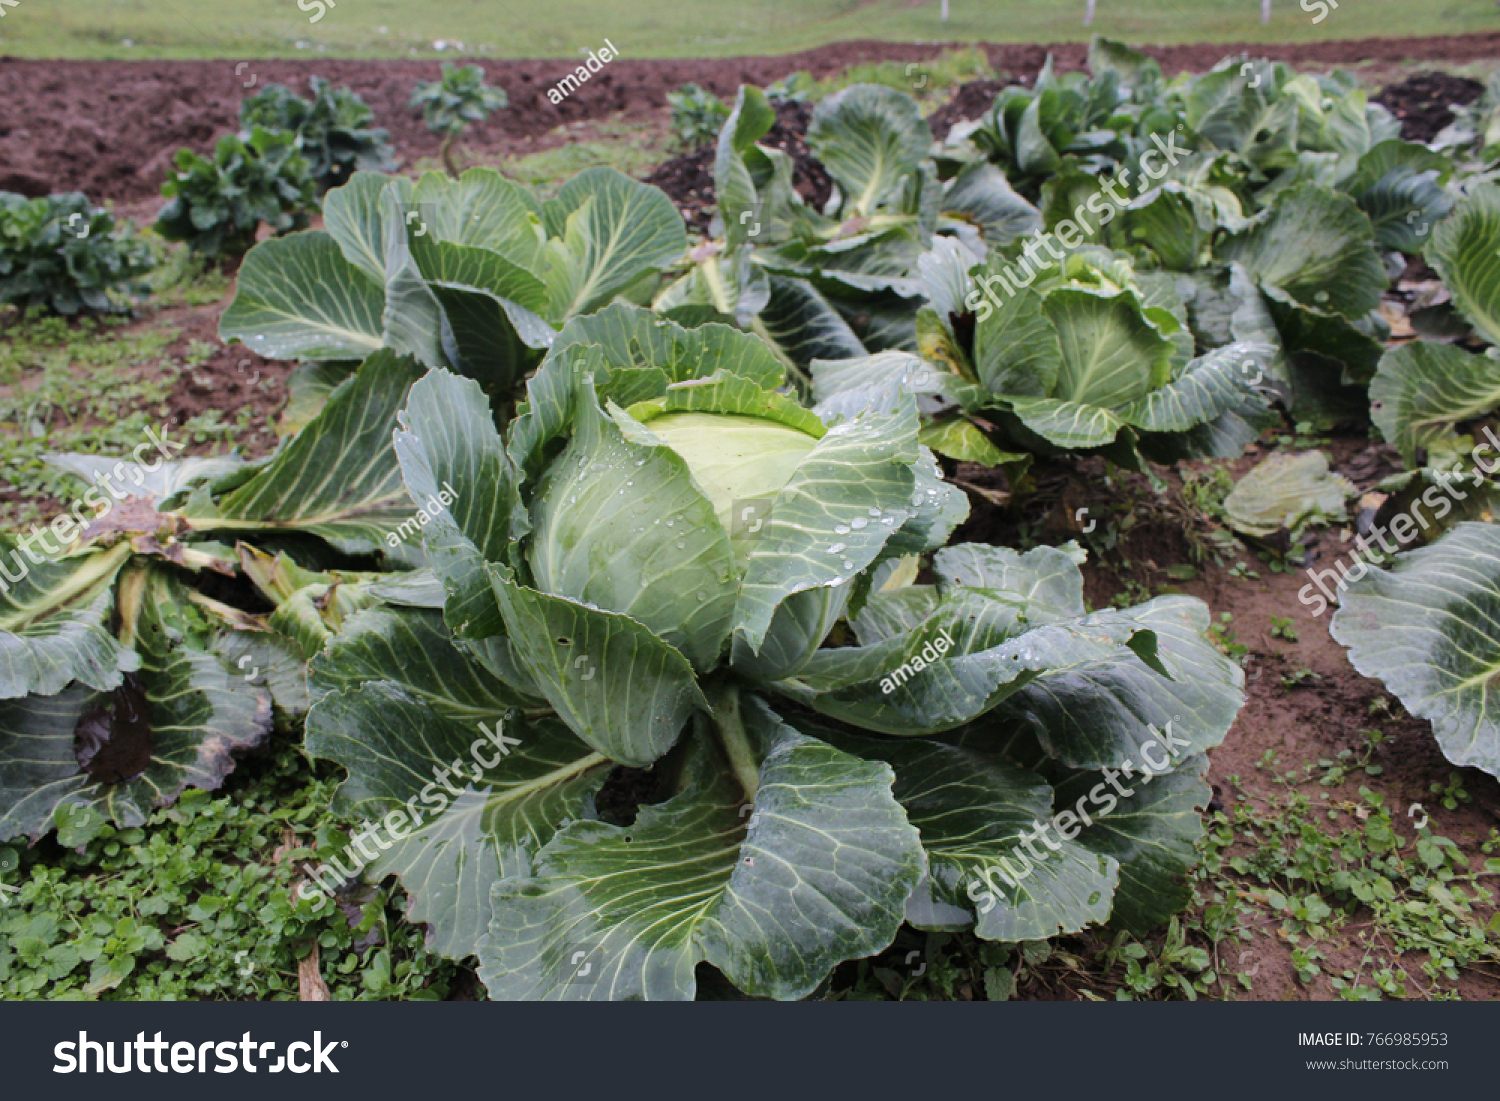 stock-photo-late-autumn-white-cabbage-in